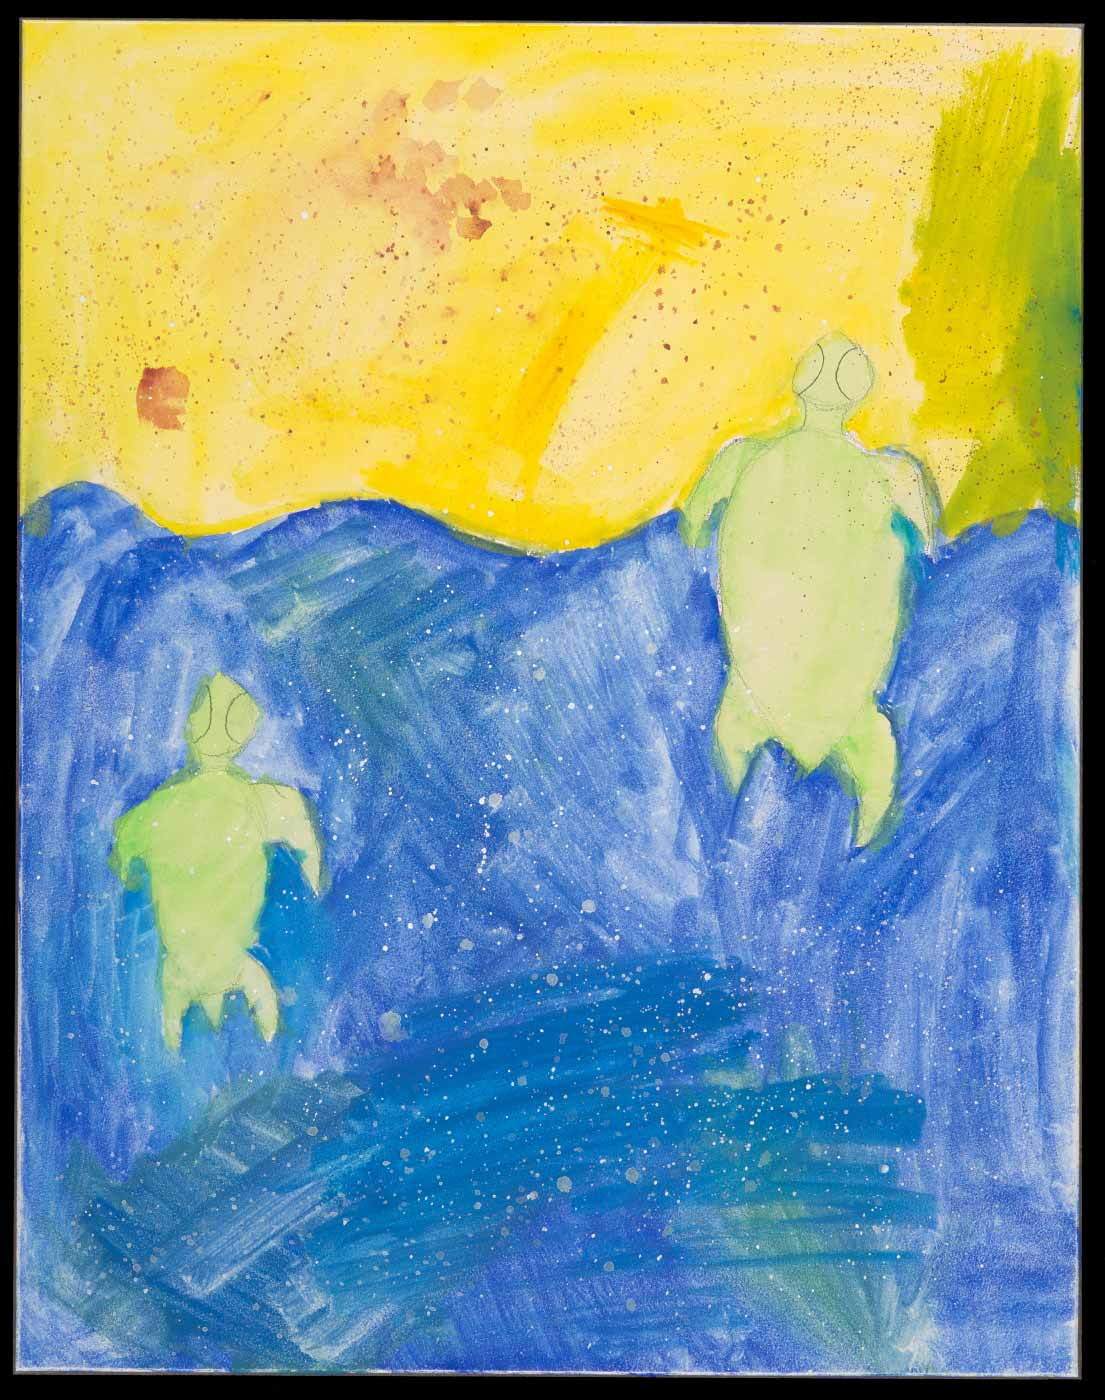 Painting on aquabord, depicting two green turtles emerging from blue water onto yellow sand. - click to view larger image